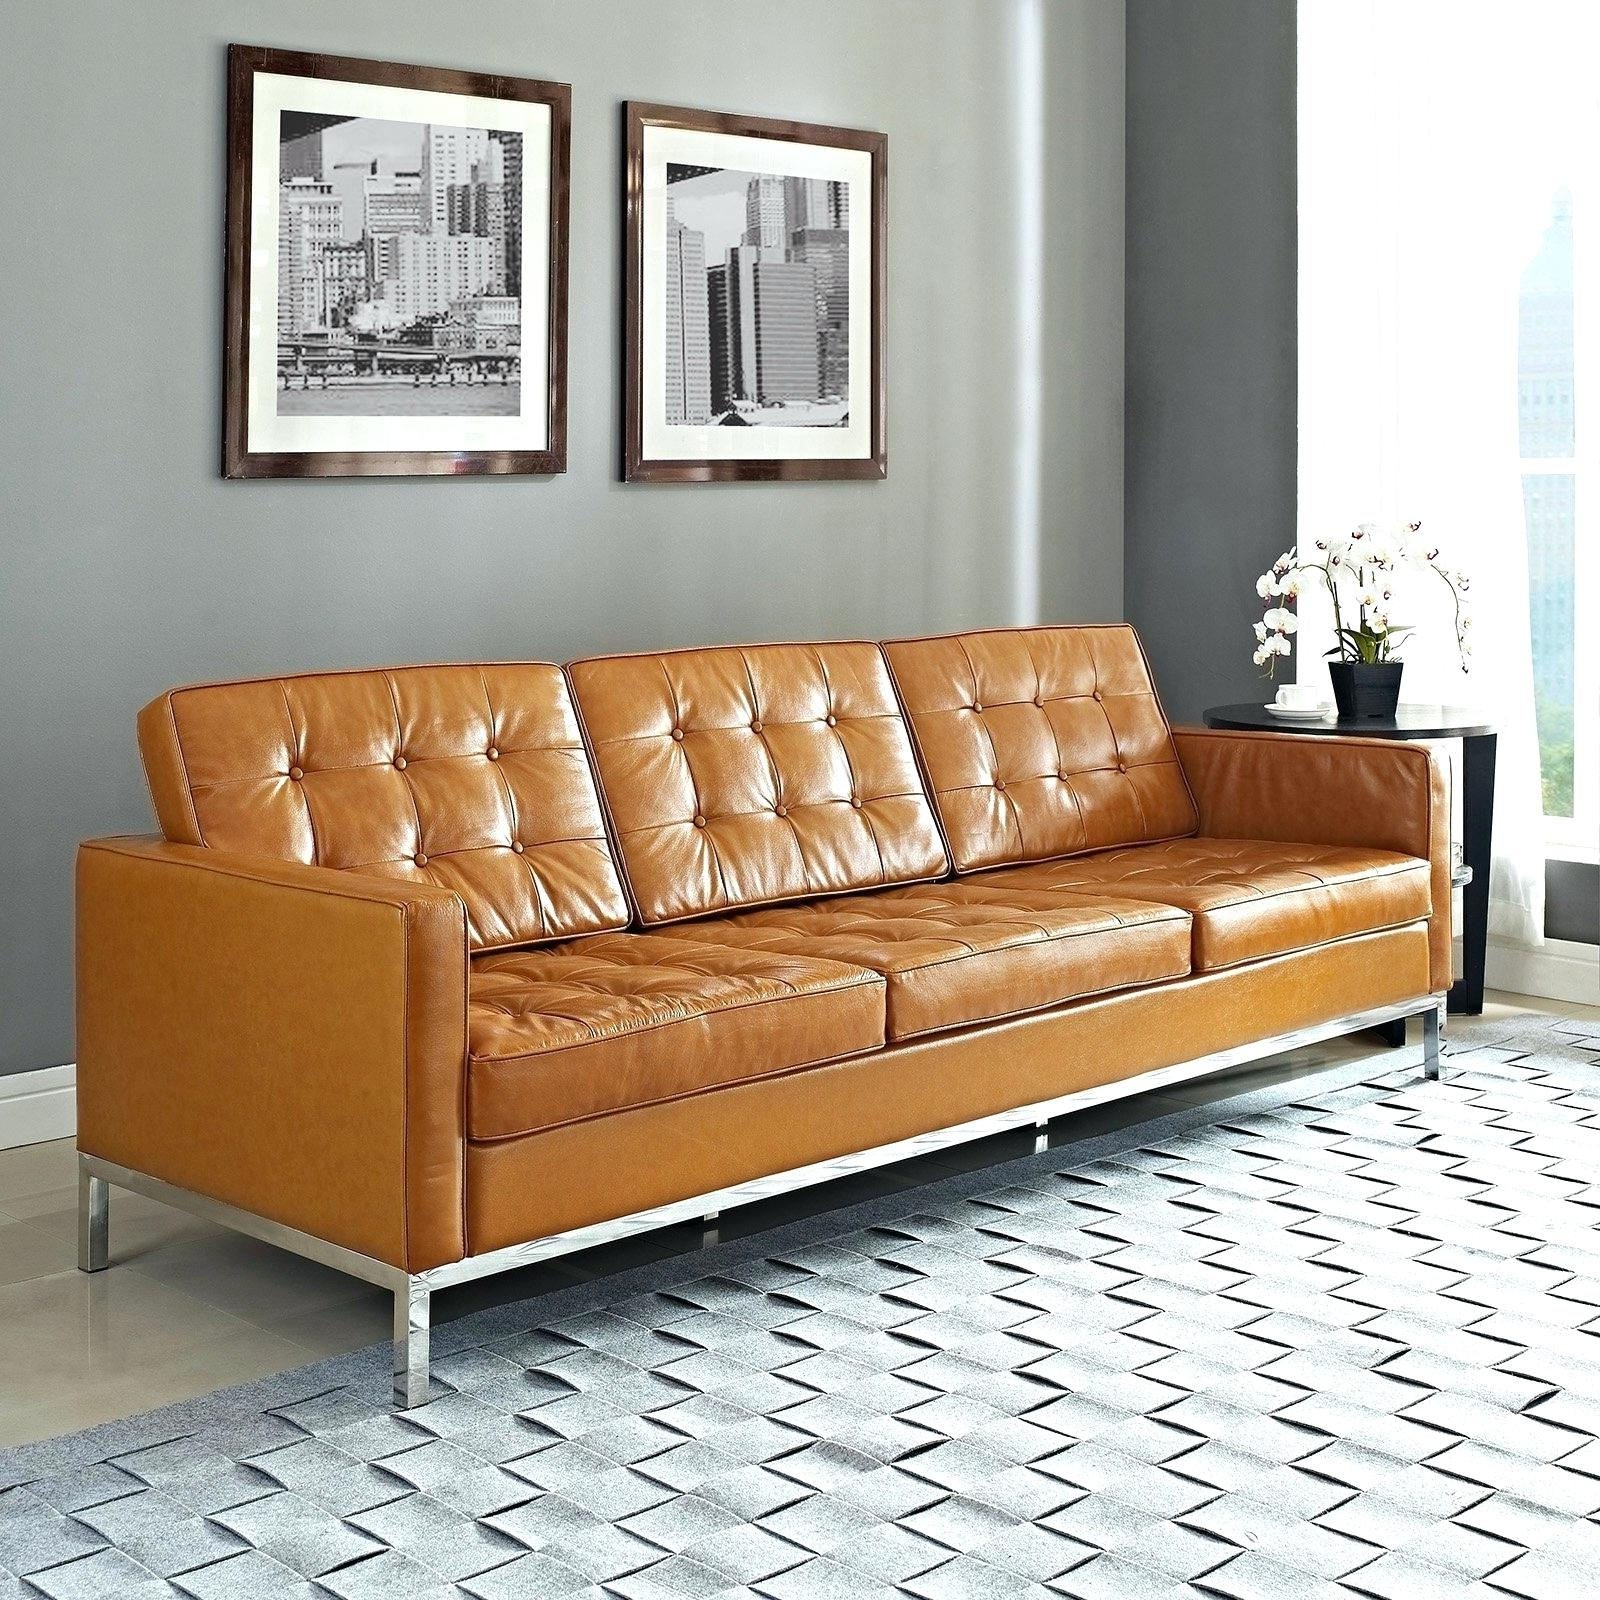 Full Image For Samuel Leather Sofa Light Tan Couch Living Room Inside Current Light Tan Leather Sofas (View 10 of 15)